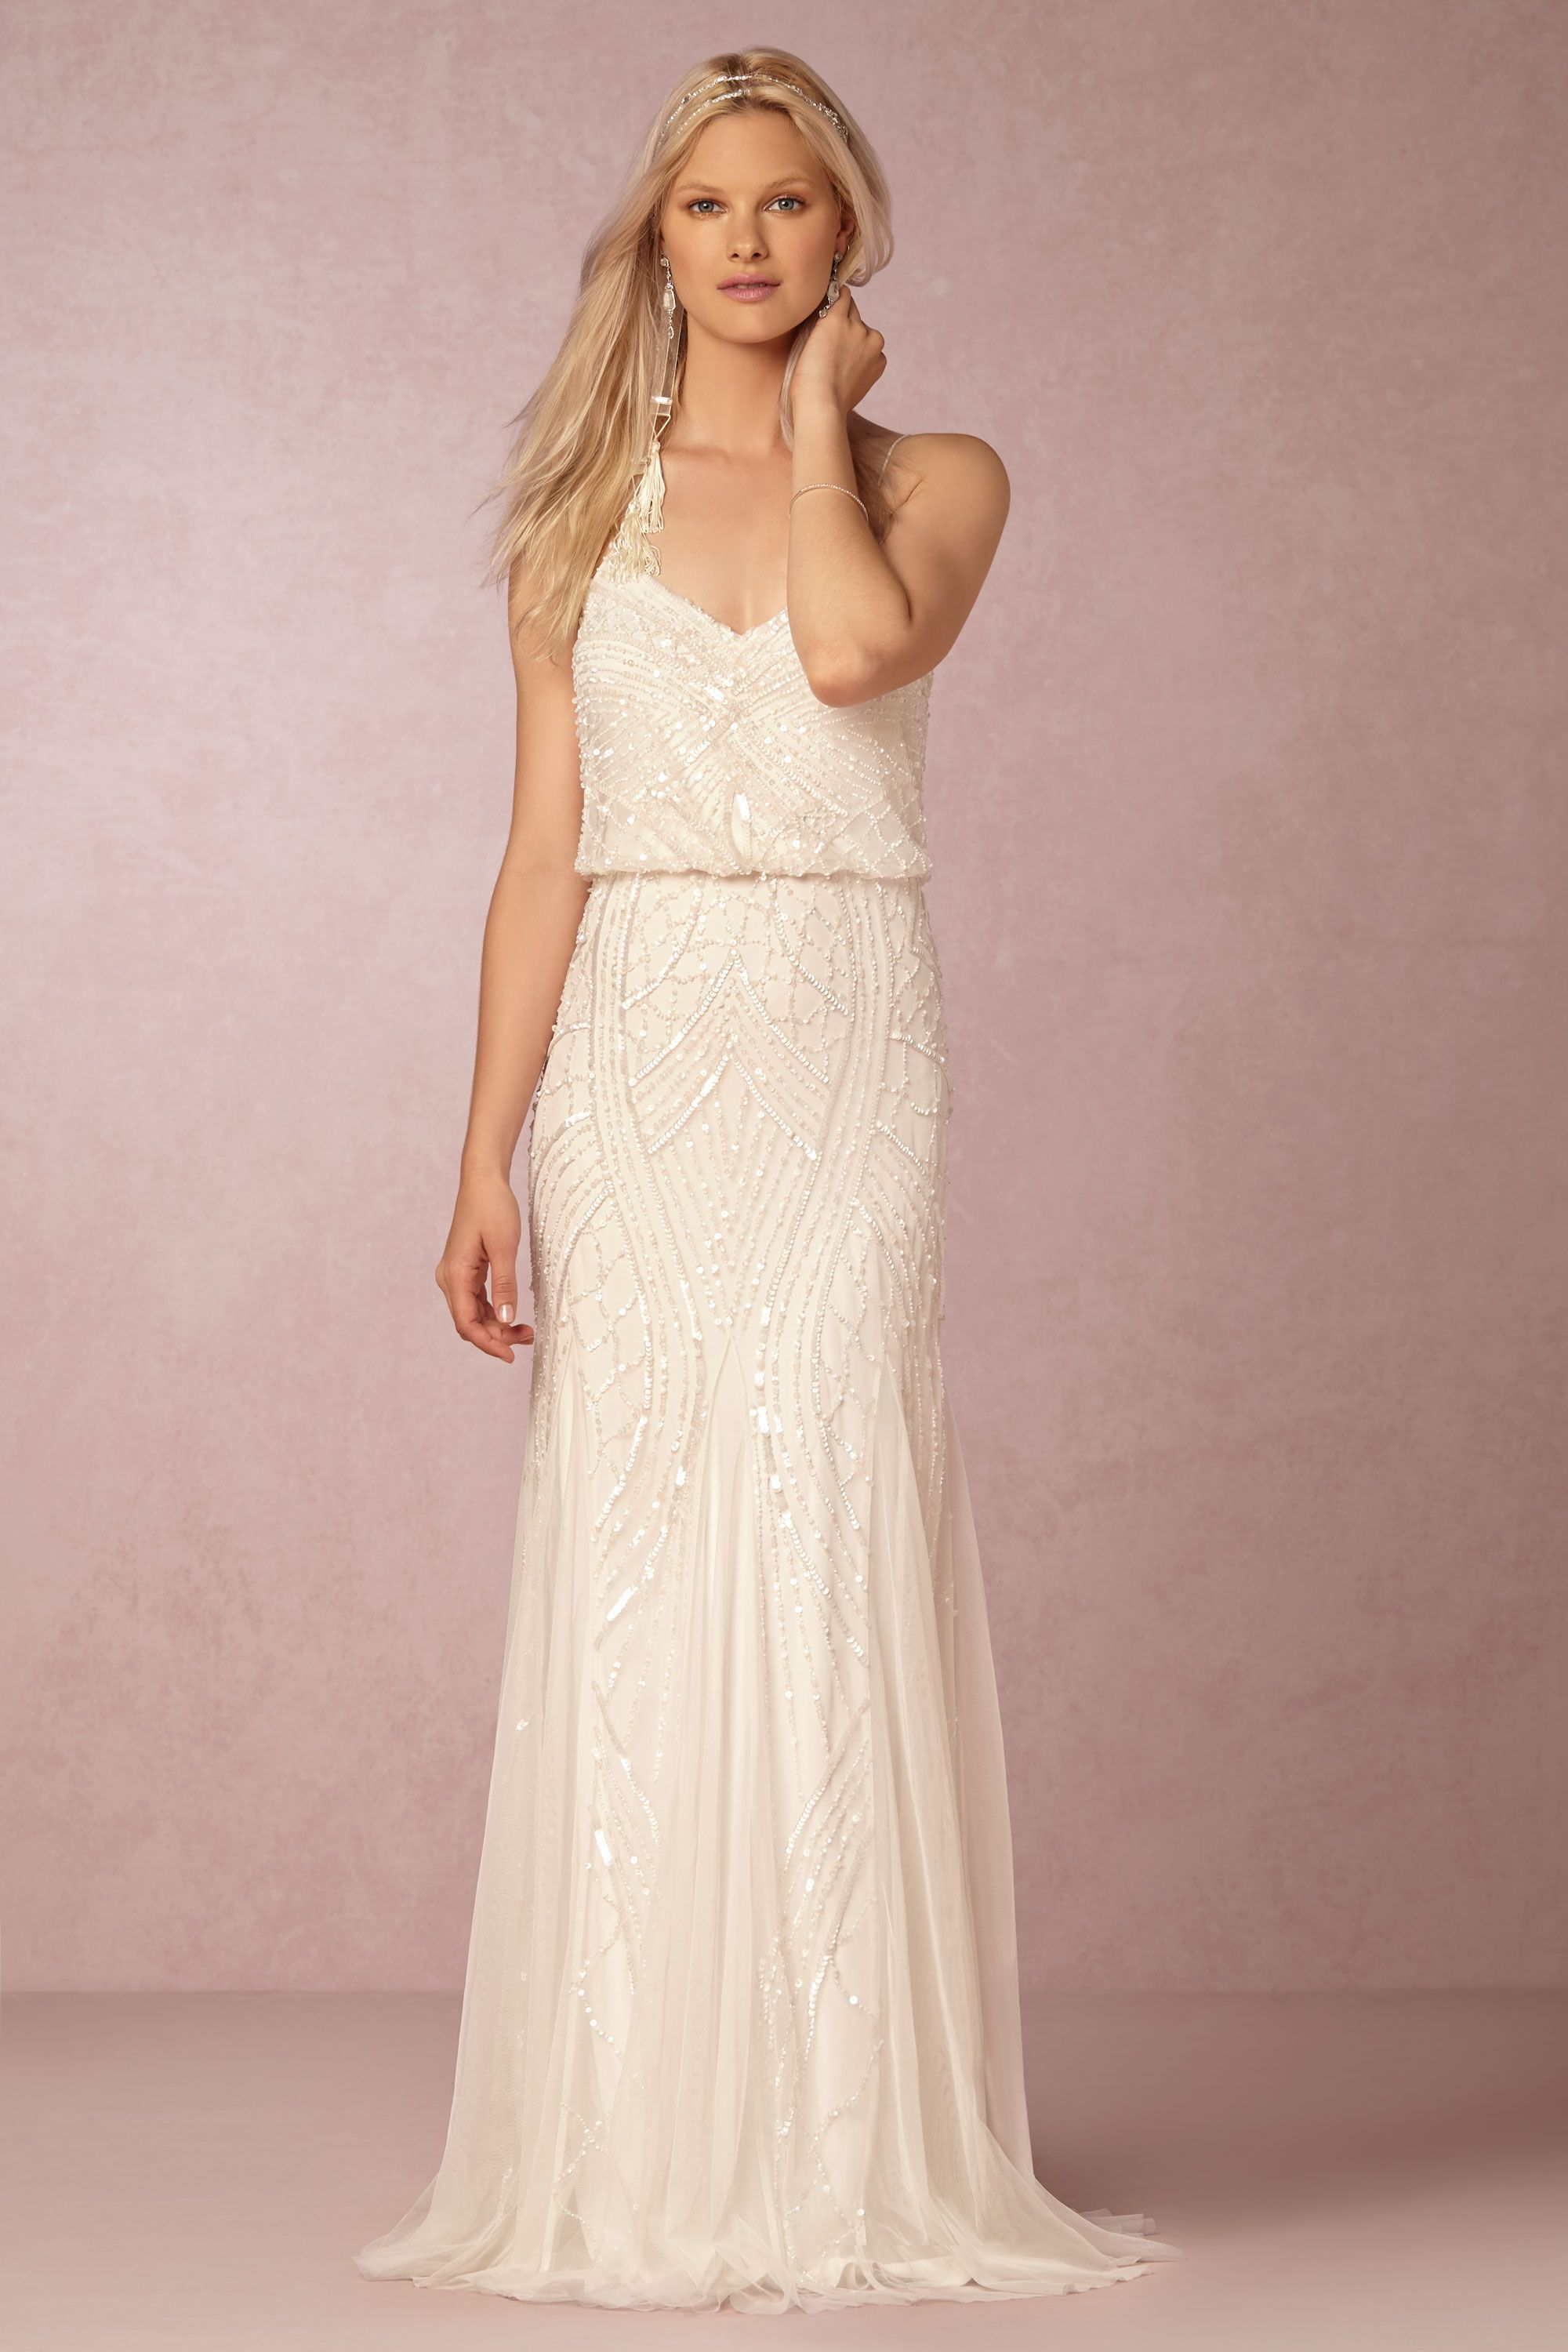 wedding reception dresses Grazia Dress by Adrianna Papell exclusively for BHLDN Bride Reception DressesWedding